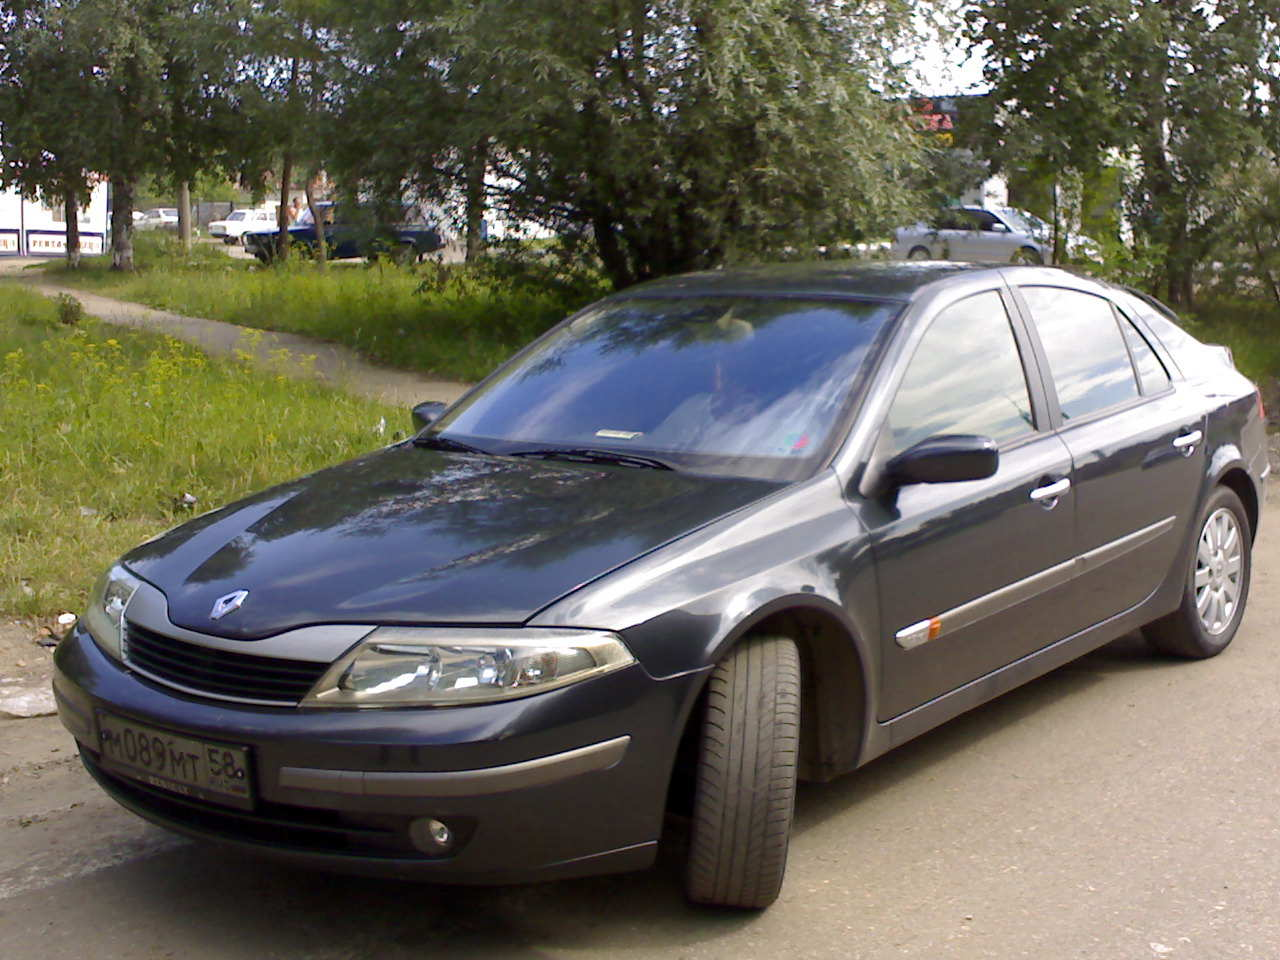 2001 renault laguna pictures gasoline ff manual for sale. Black Bedroom Furniture Sets. Home Design Ideas